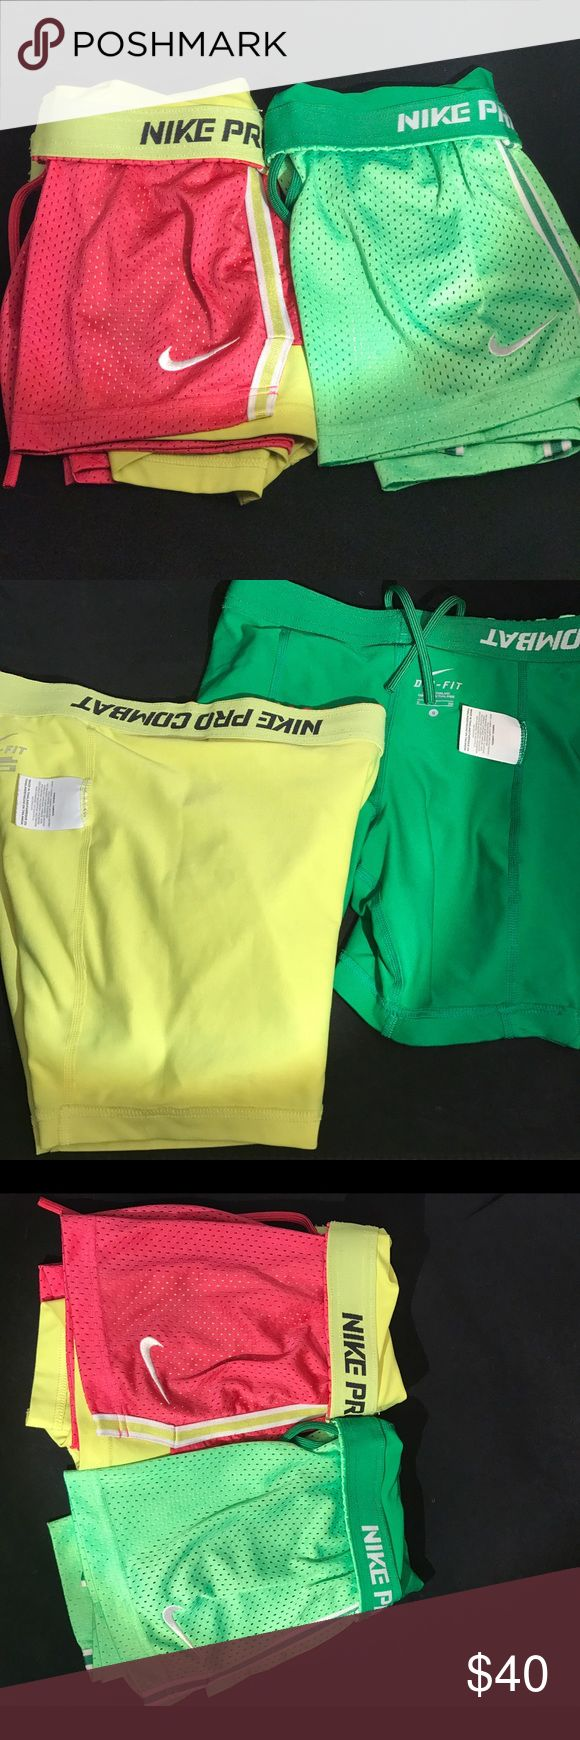 Nike Pro Combat Shorts Listing is 2 Nike Pro Combat Short Listing is for 2 Both are Size Small In Good Condition No Trades Nike Shorts